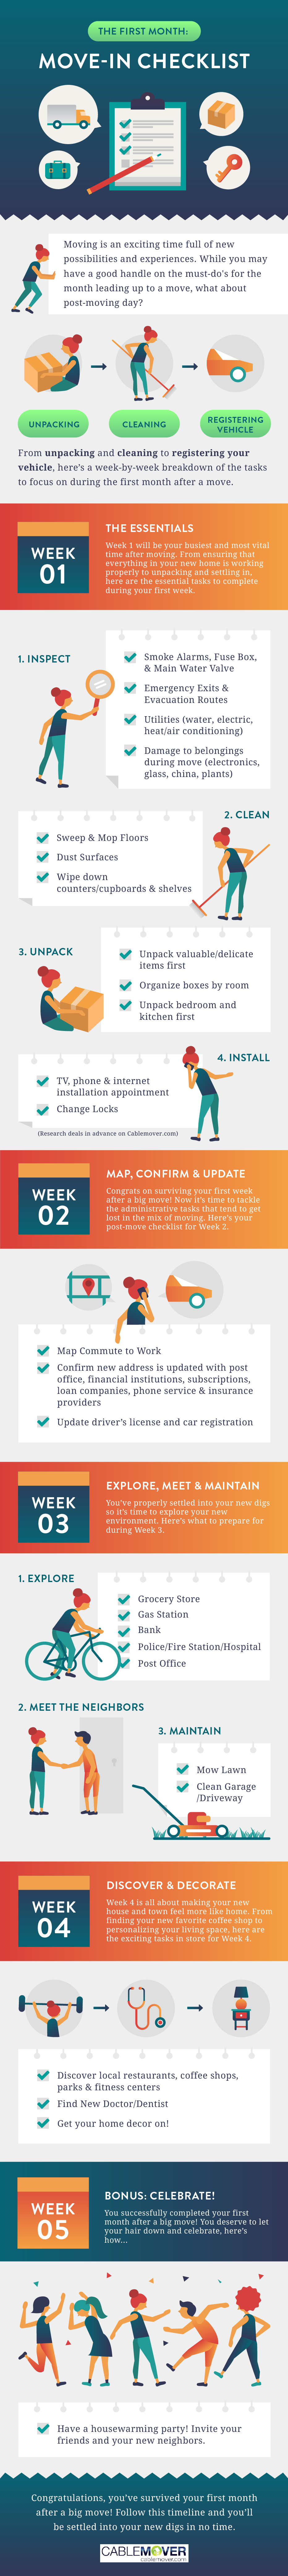 The First Month: Move-in Checklist